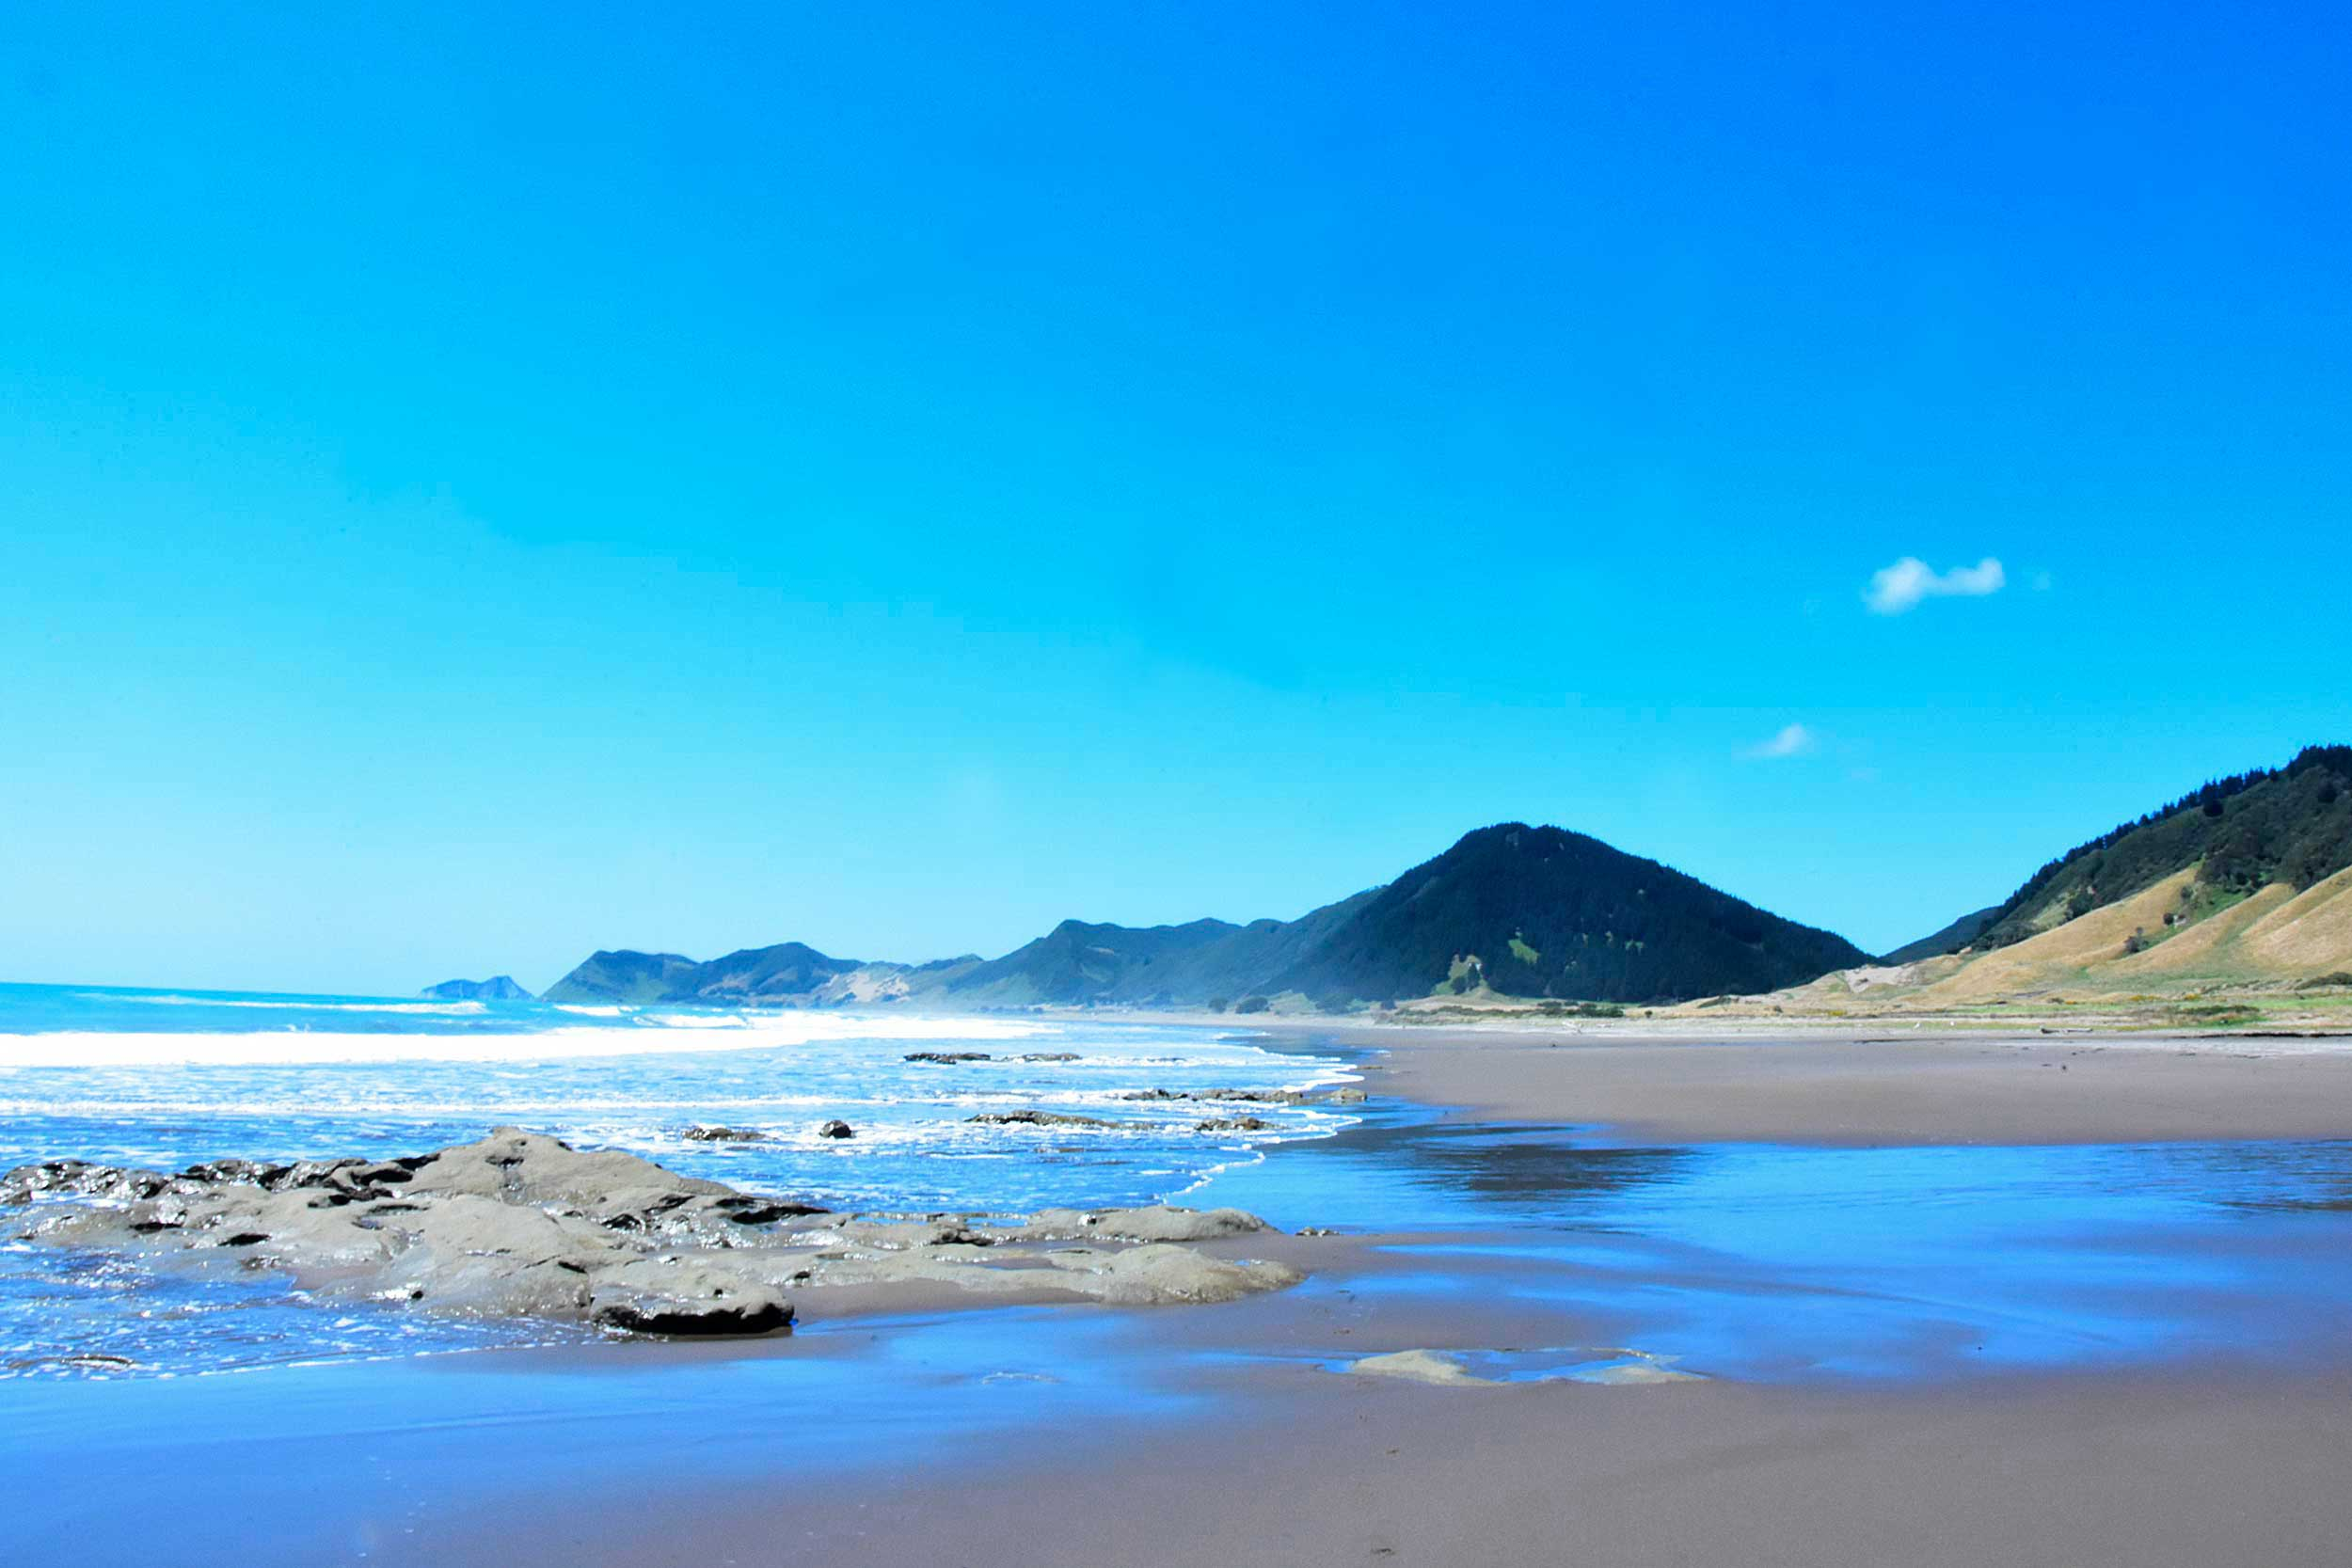 A long view of a beach, the sea, rocks in the foreground, a mountain in the distance, East Coast, New Zealand